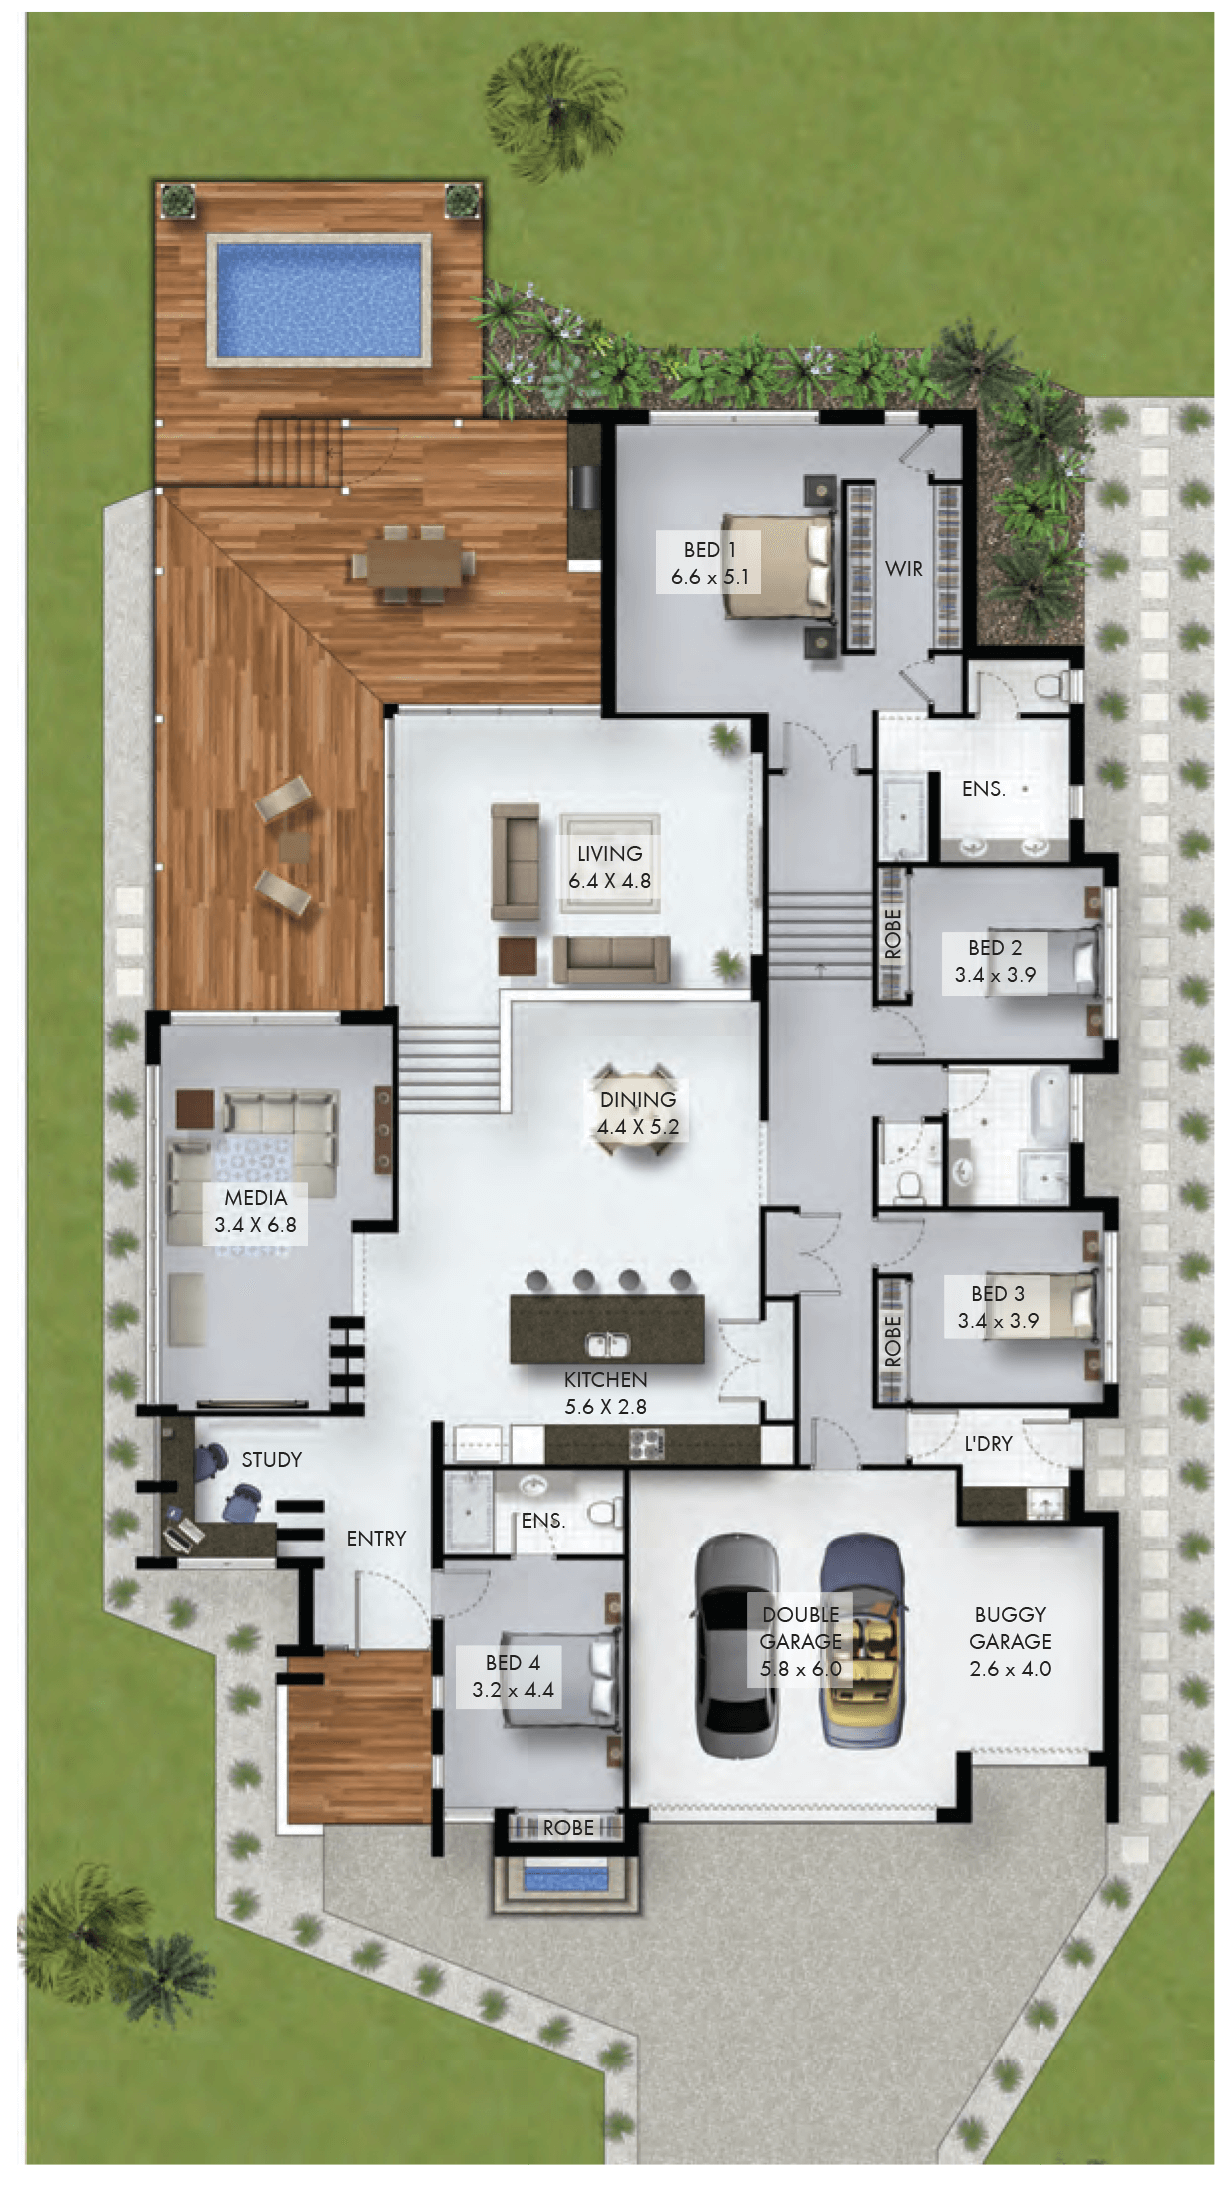 4 bedroom home with study nook and triple car garage - Bedroom floor plans homes ...